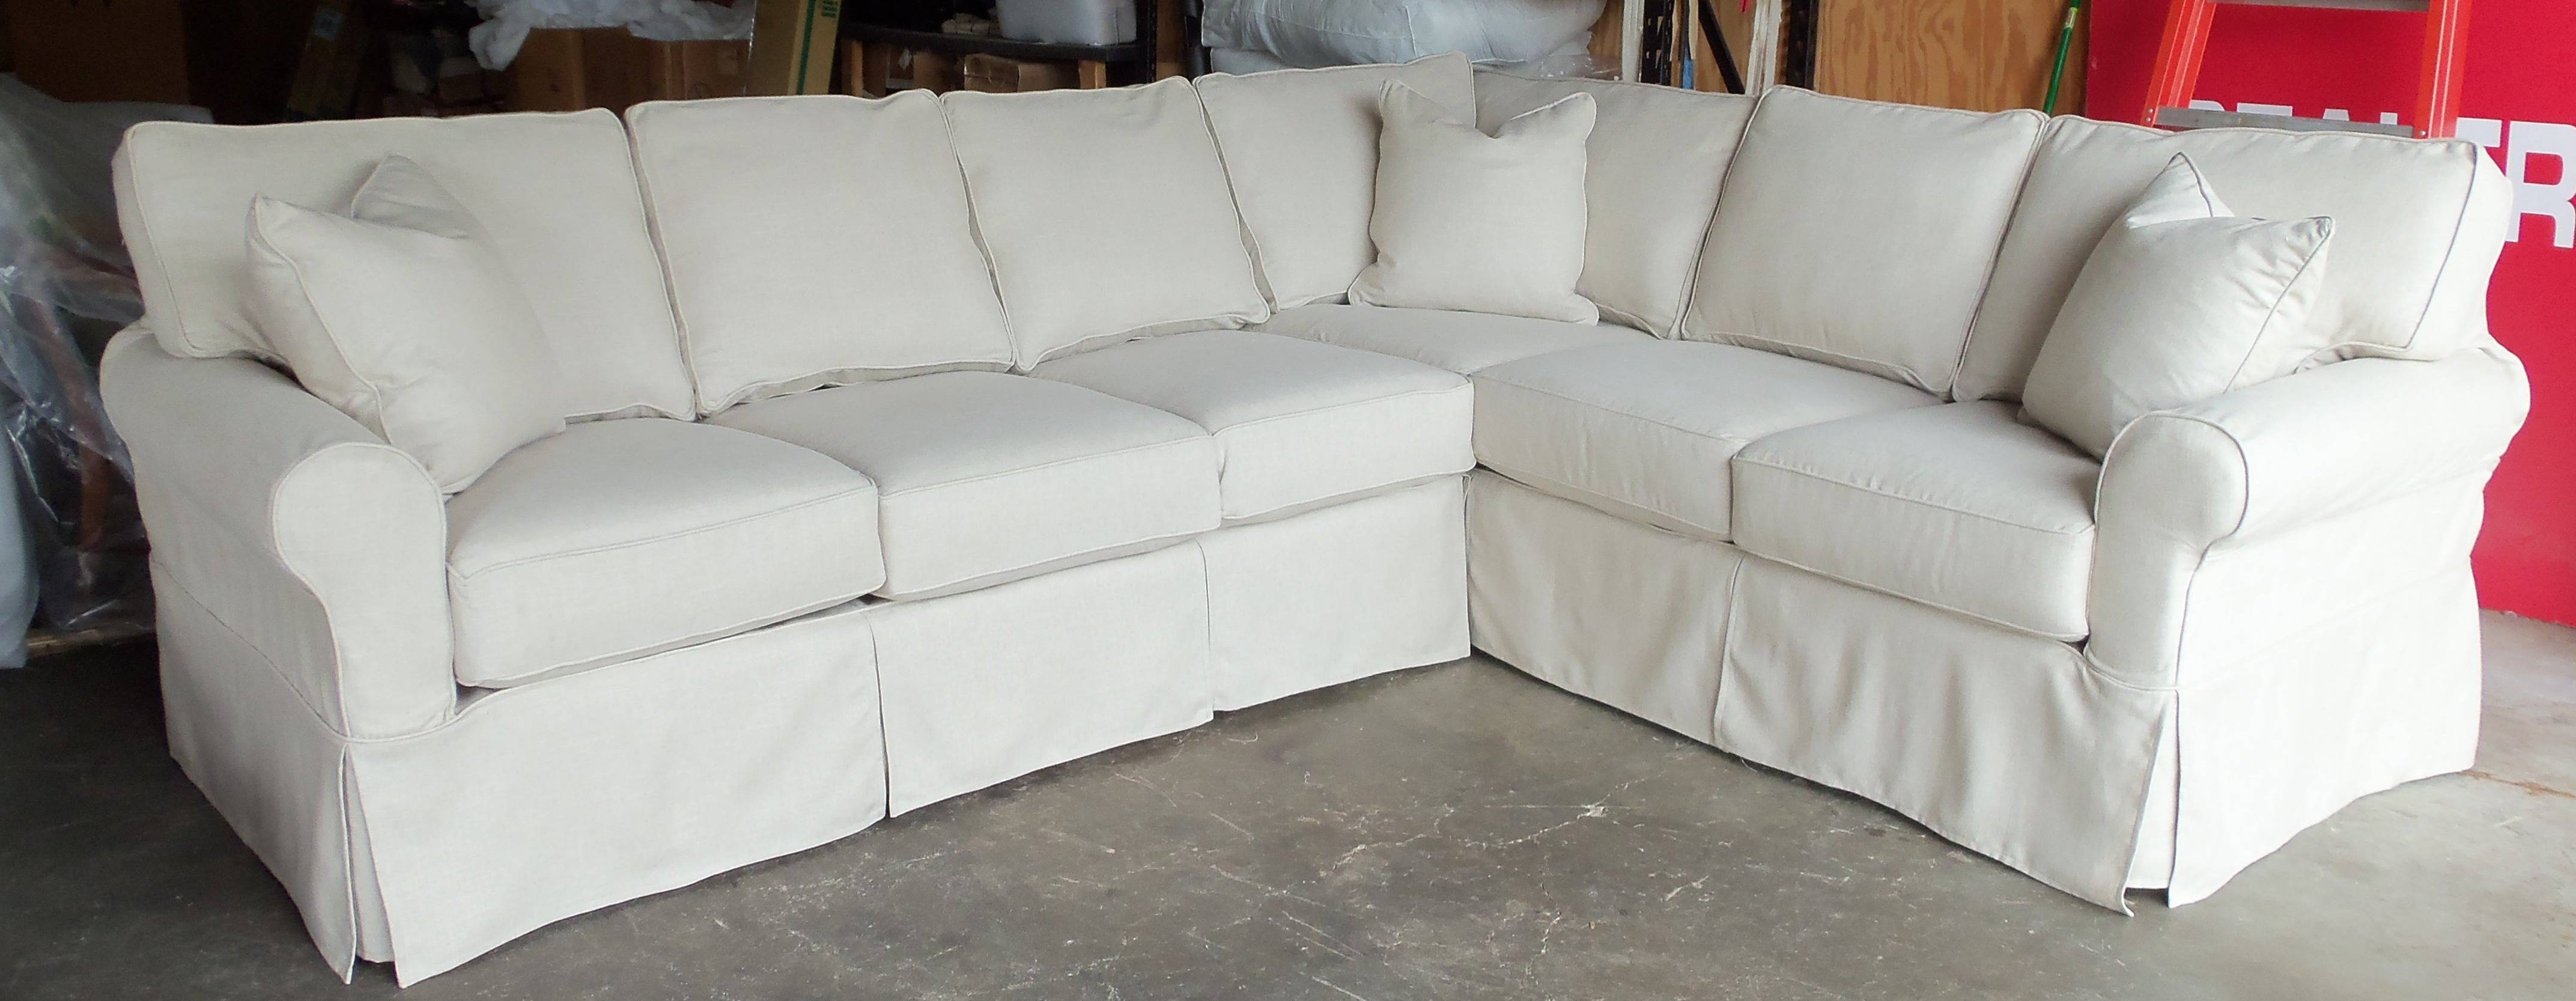 Inspirations: Interesting Furniture Sectional Sofa Slipcovers For in Large Sofa Slipcovers (Image 10 of 30)